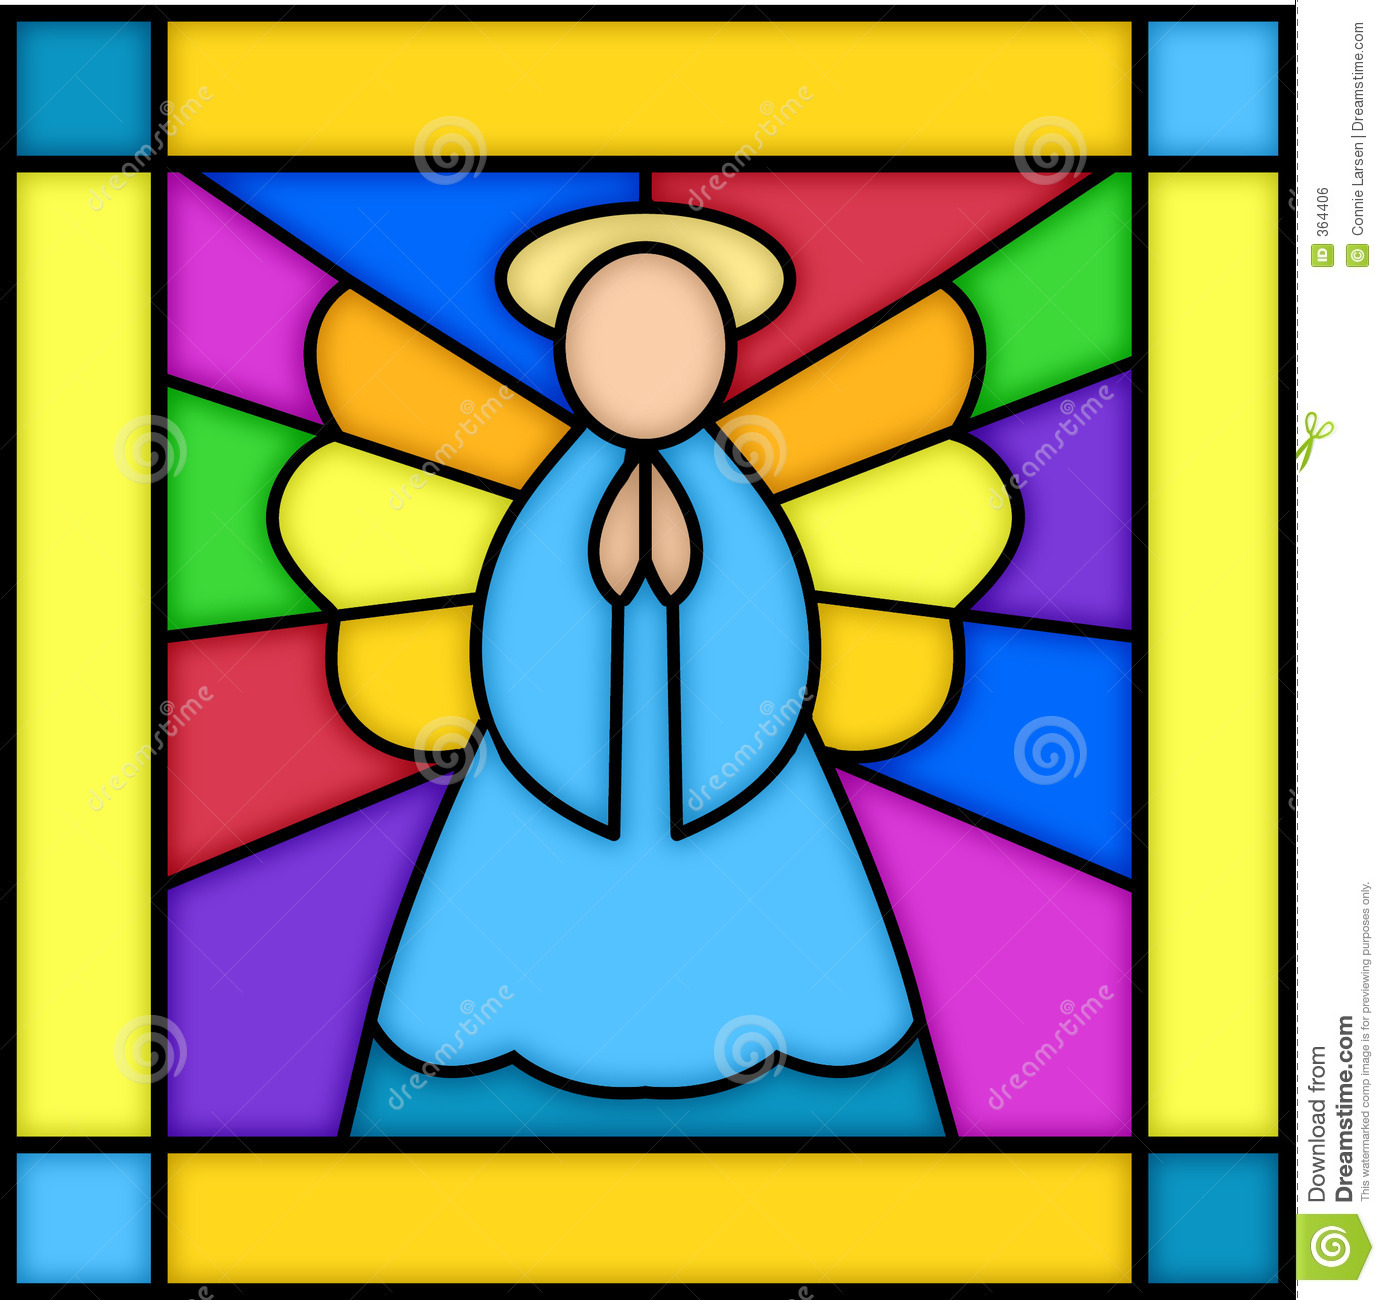 stained glass clipart church window clipart panda free hummingbird clipart borders hummingbird clipart black and white free